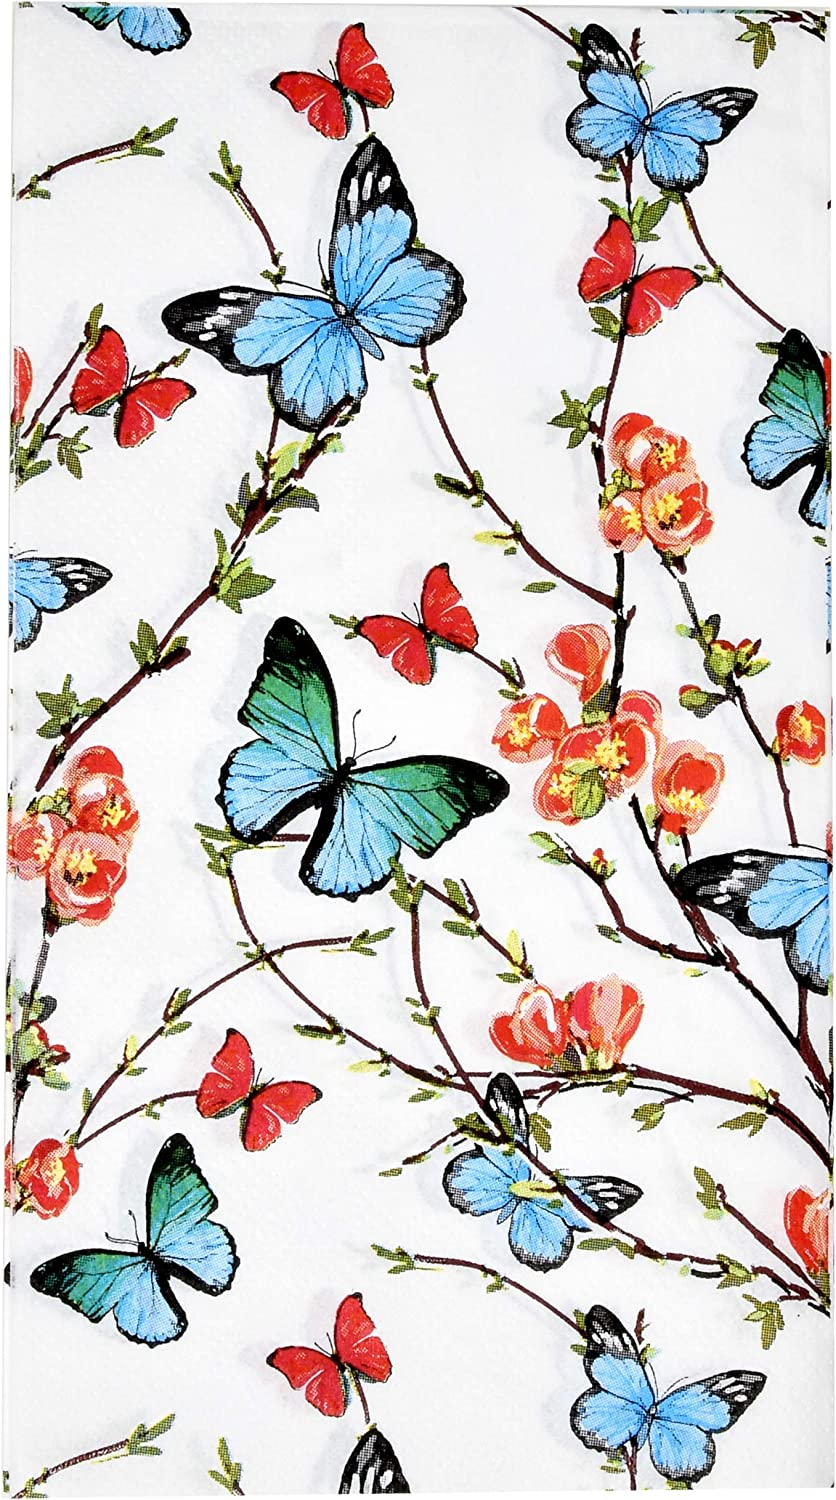 100 Butterfly Guest Napkins 3 Ply Disposable Paper Pack Spring Butterflies & Flowers Dinner Hand Napkin for Bathroom Wedding Holiday Anniversary Birthday Party Bridal & Baby Shower Decorative Towels